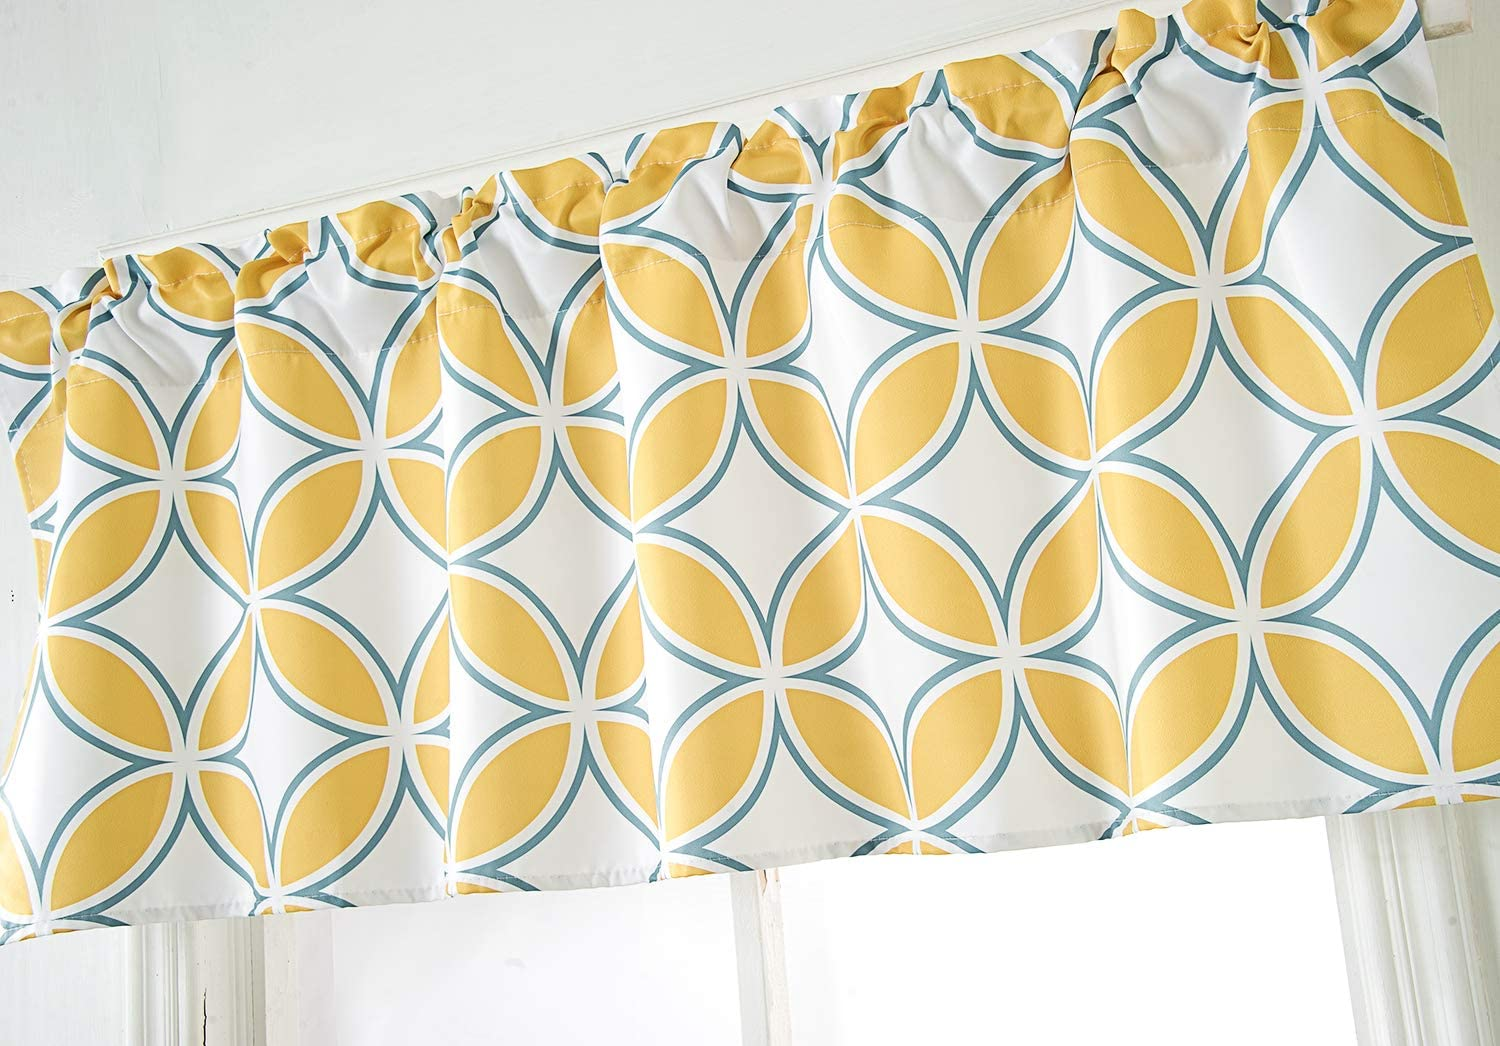 Annlaite Geo Valance for Windows12 by 12 inches Elegant Colorful Printed  Room Darkening Window Curtain Valance for Kitchen/Bathroom/Living ...